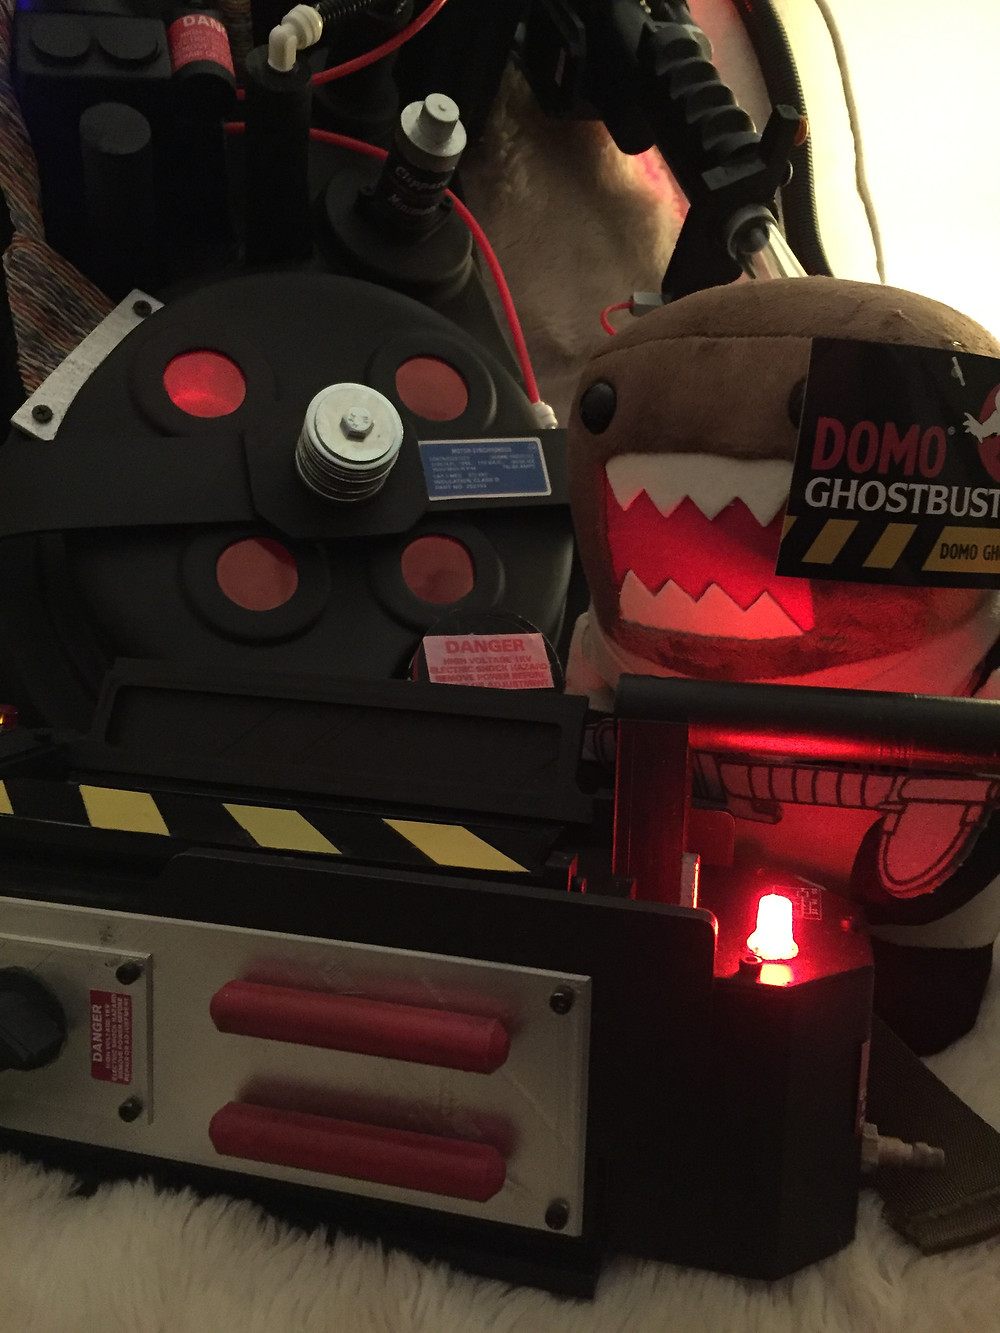 Ghostbusters Domo plushie toy with ghost trap and proton pack.